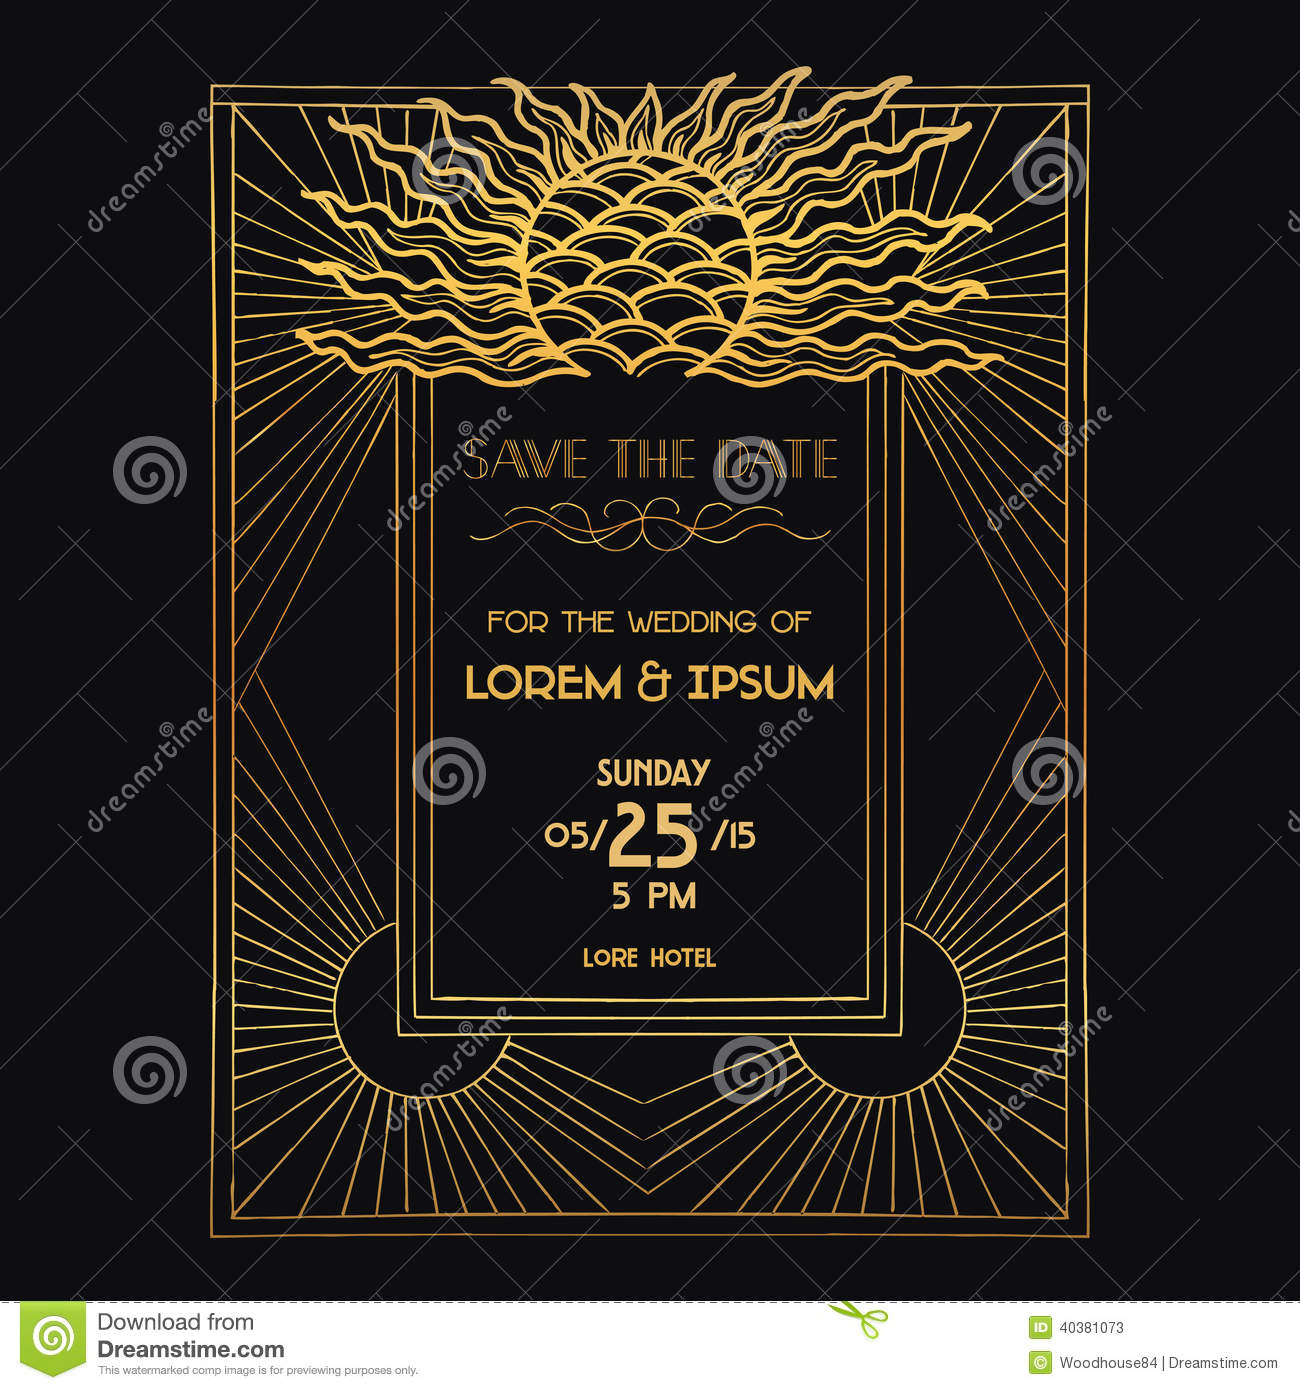 wedding invitation card art deco style stock photography 42135344. Black Bedroom Furniture Sets. Home Design Ideas